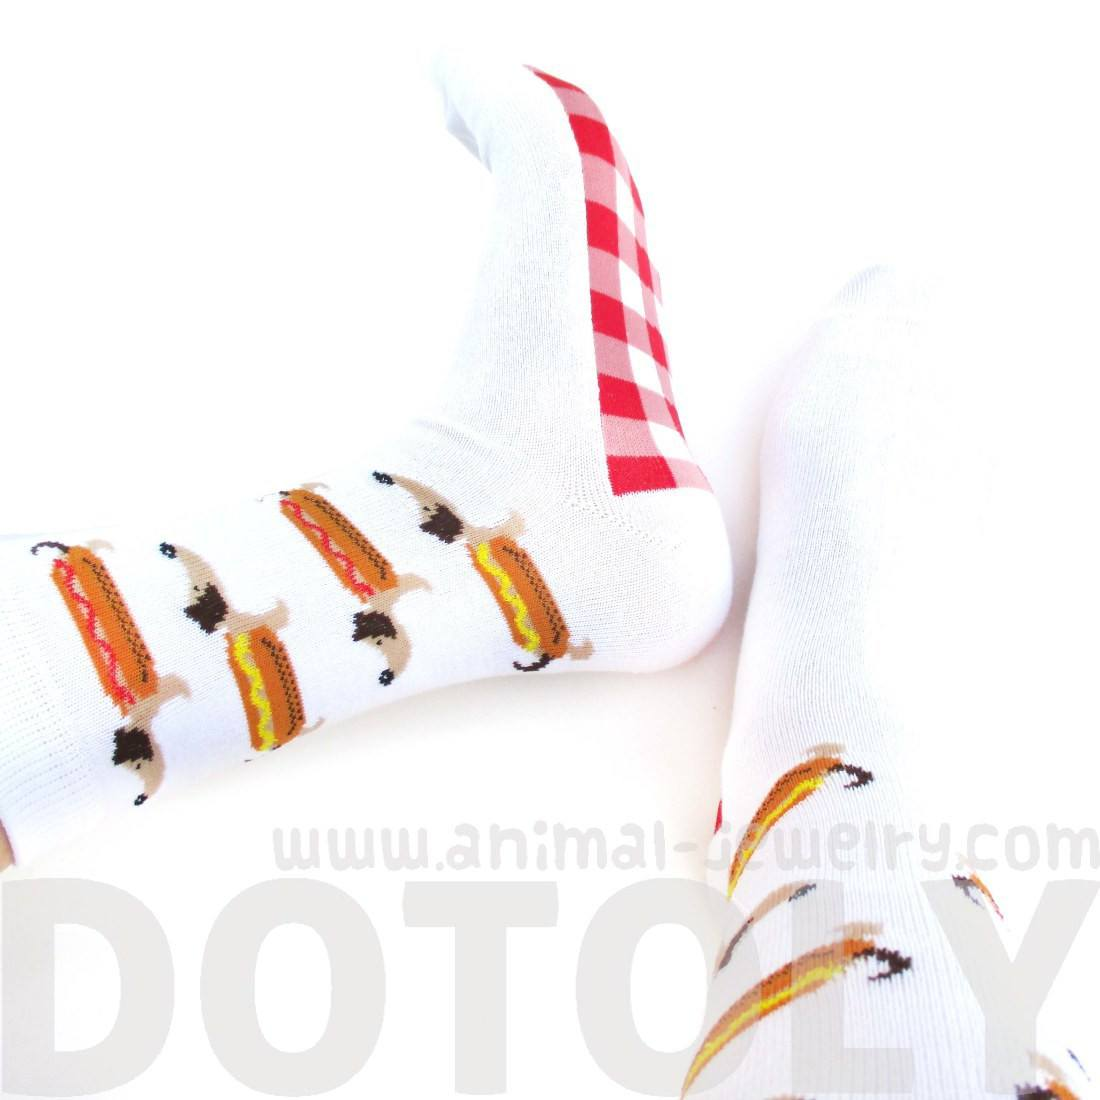 Adorable Hot Dog Dachshund Novelty Print Calf High Socks in White